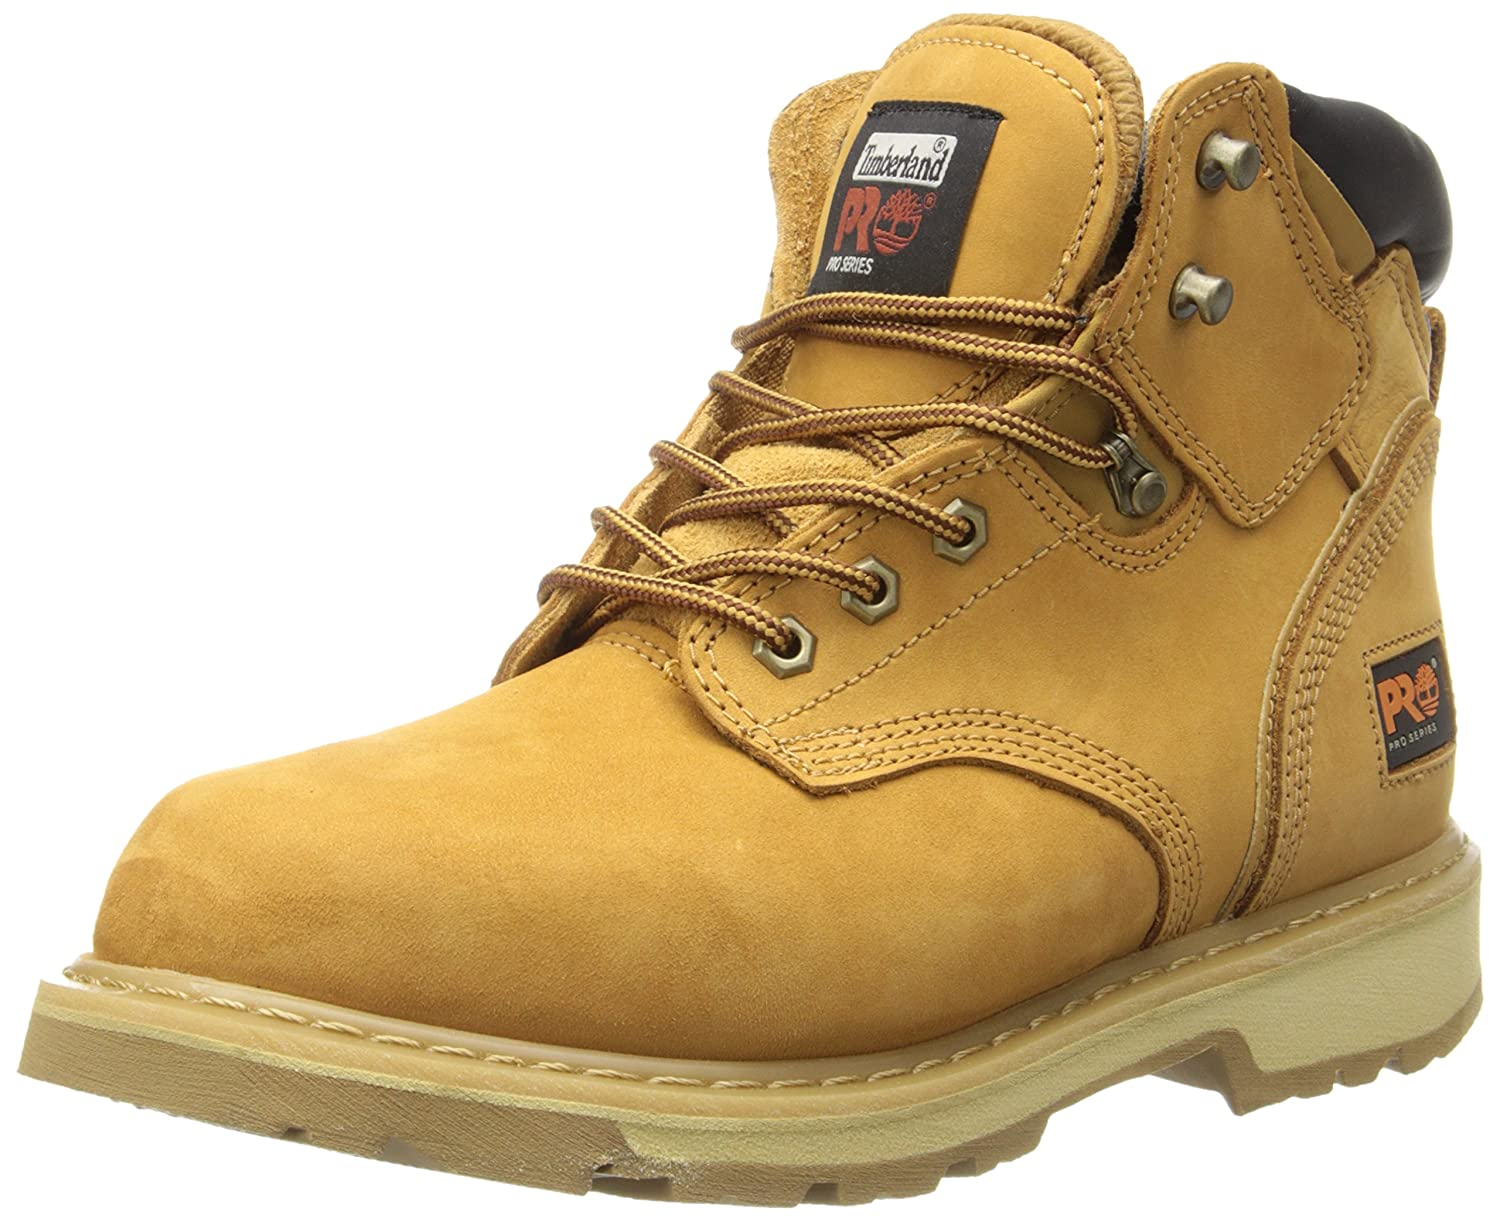 timberland pro series france